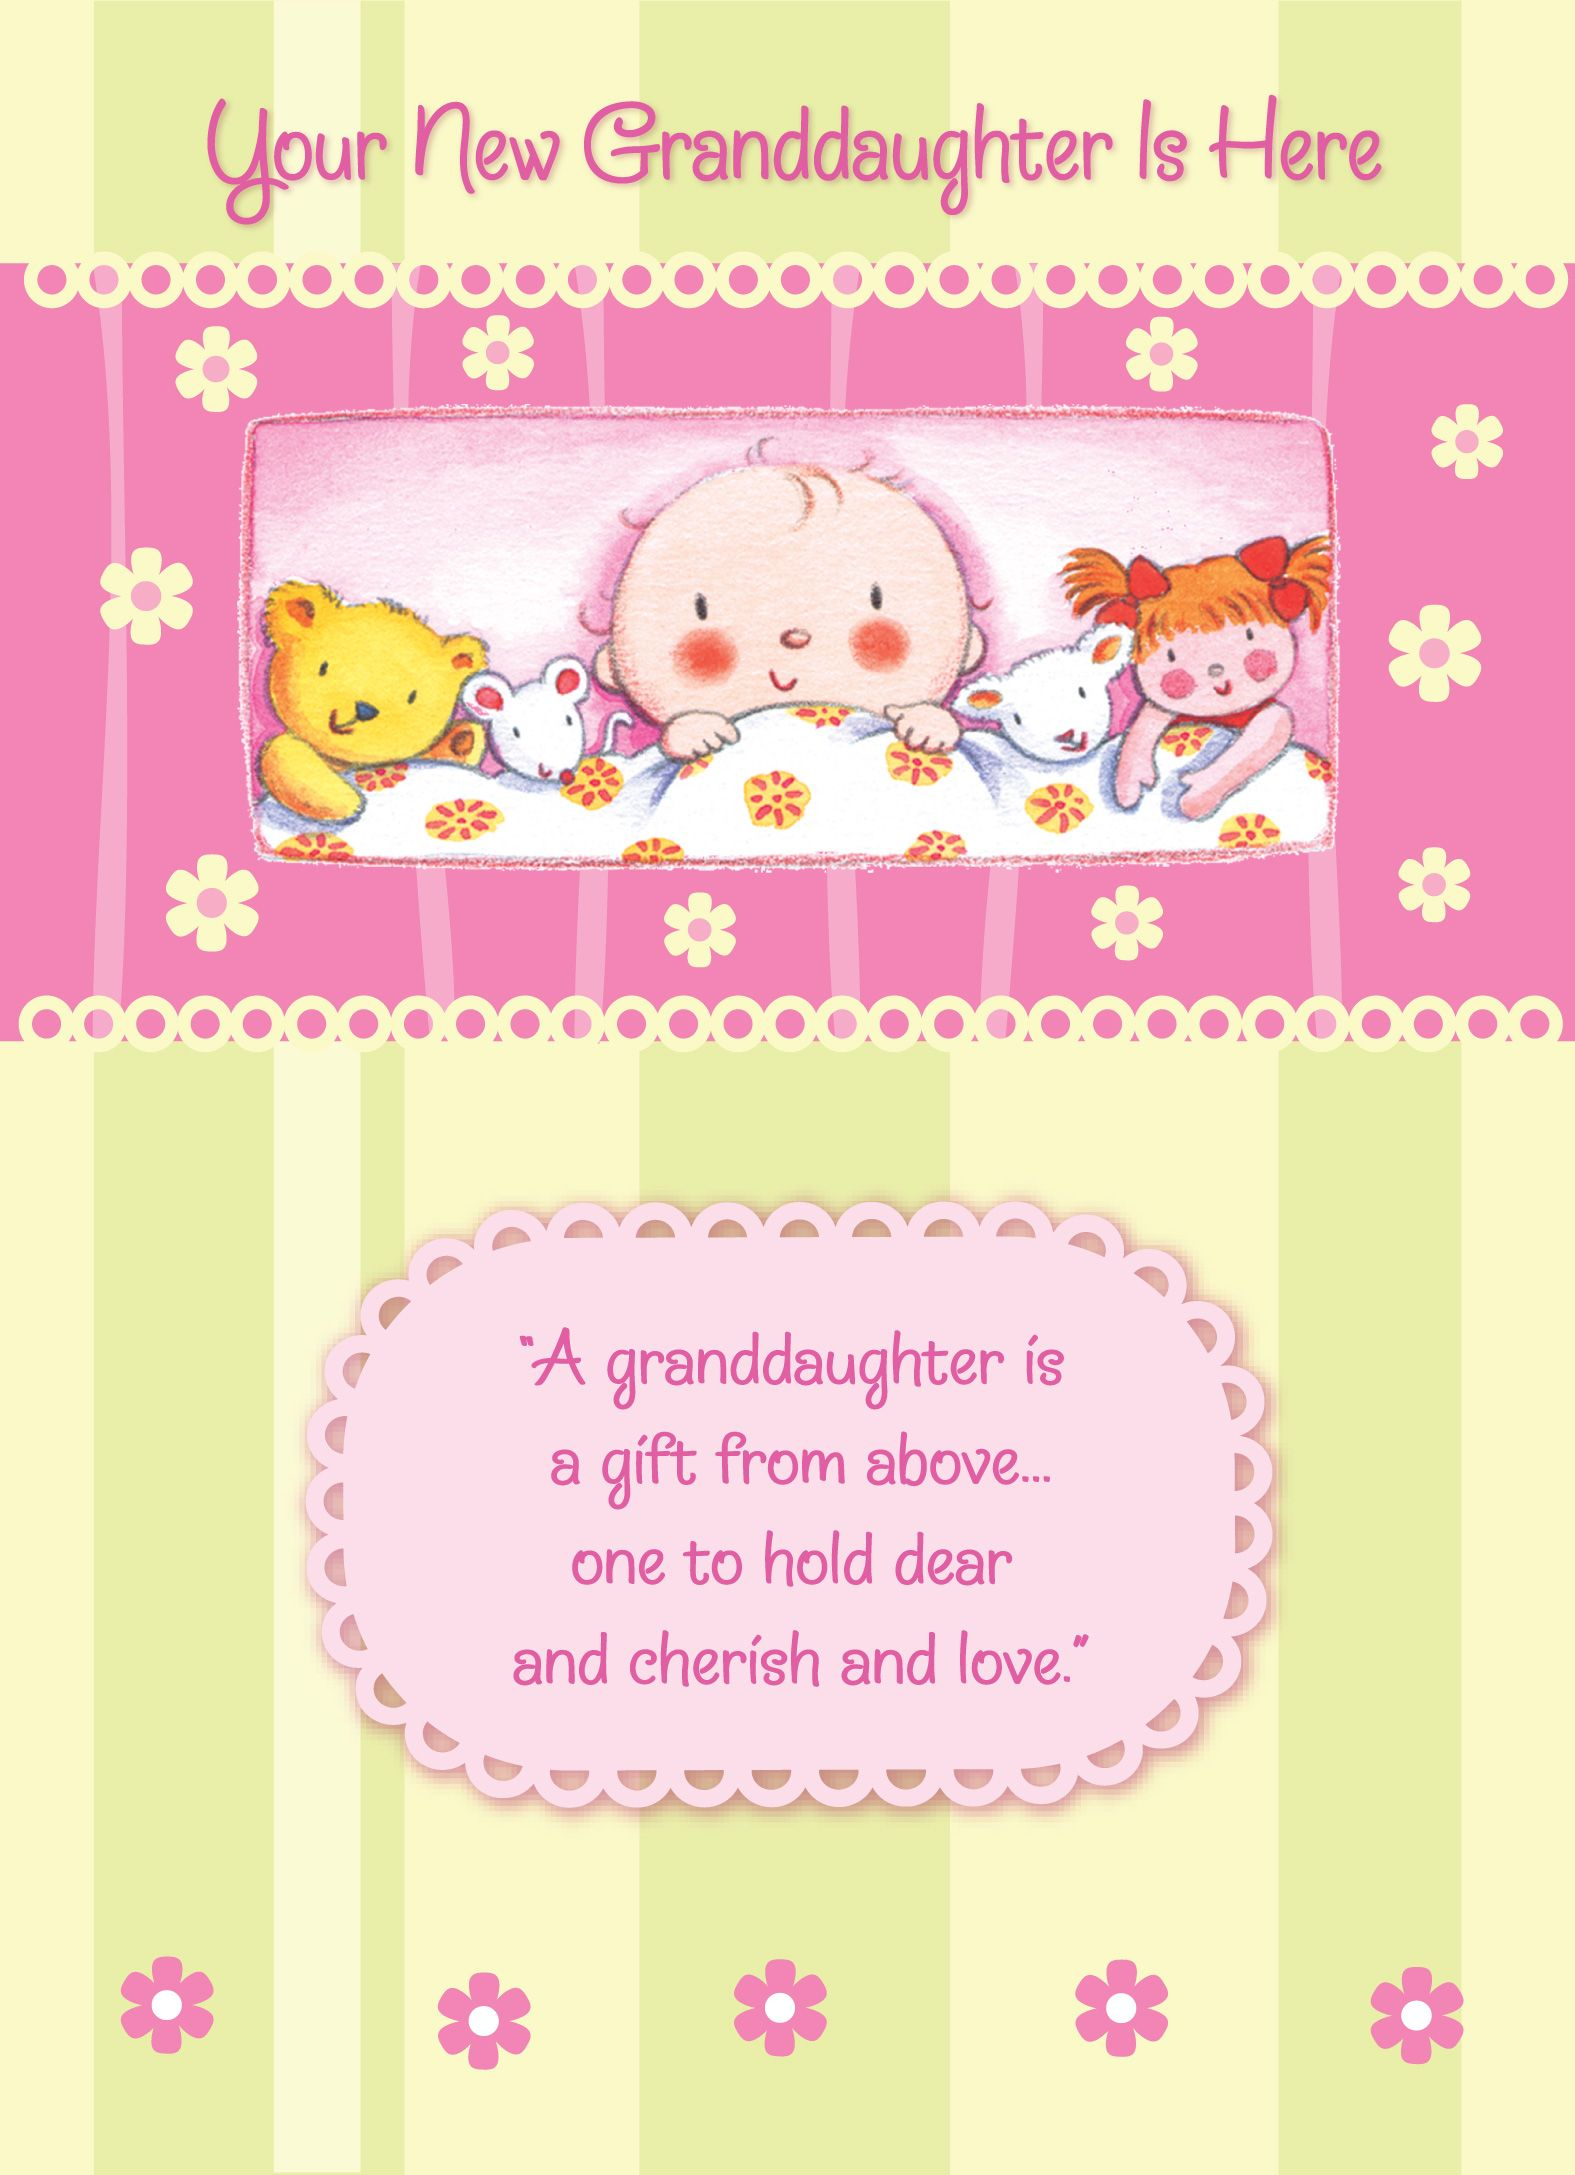 congratulations on your new granddaughter